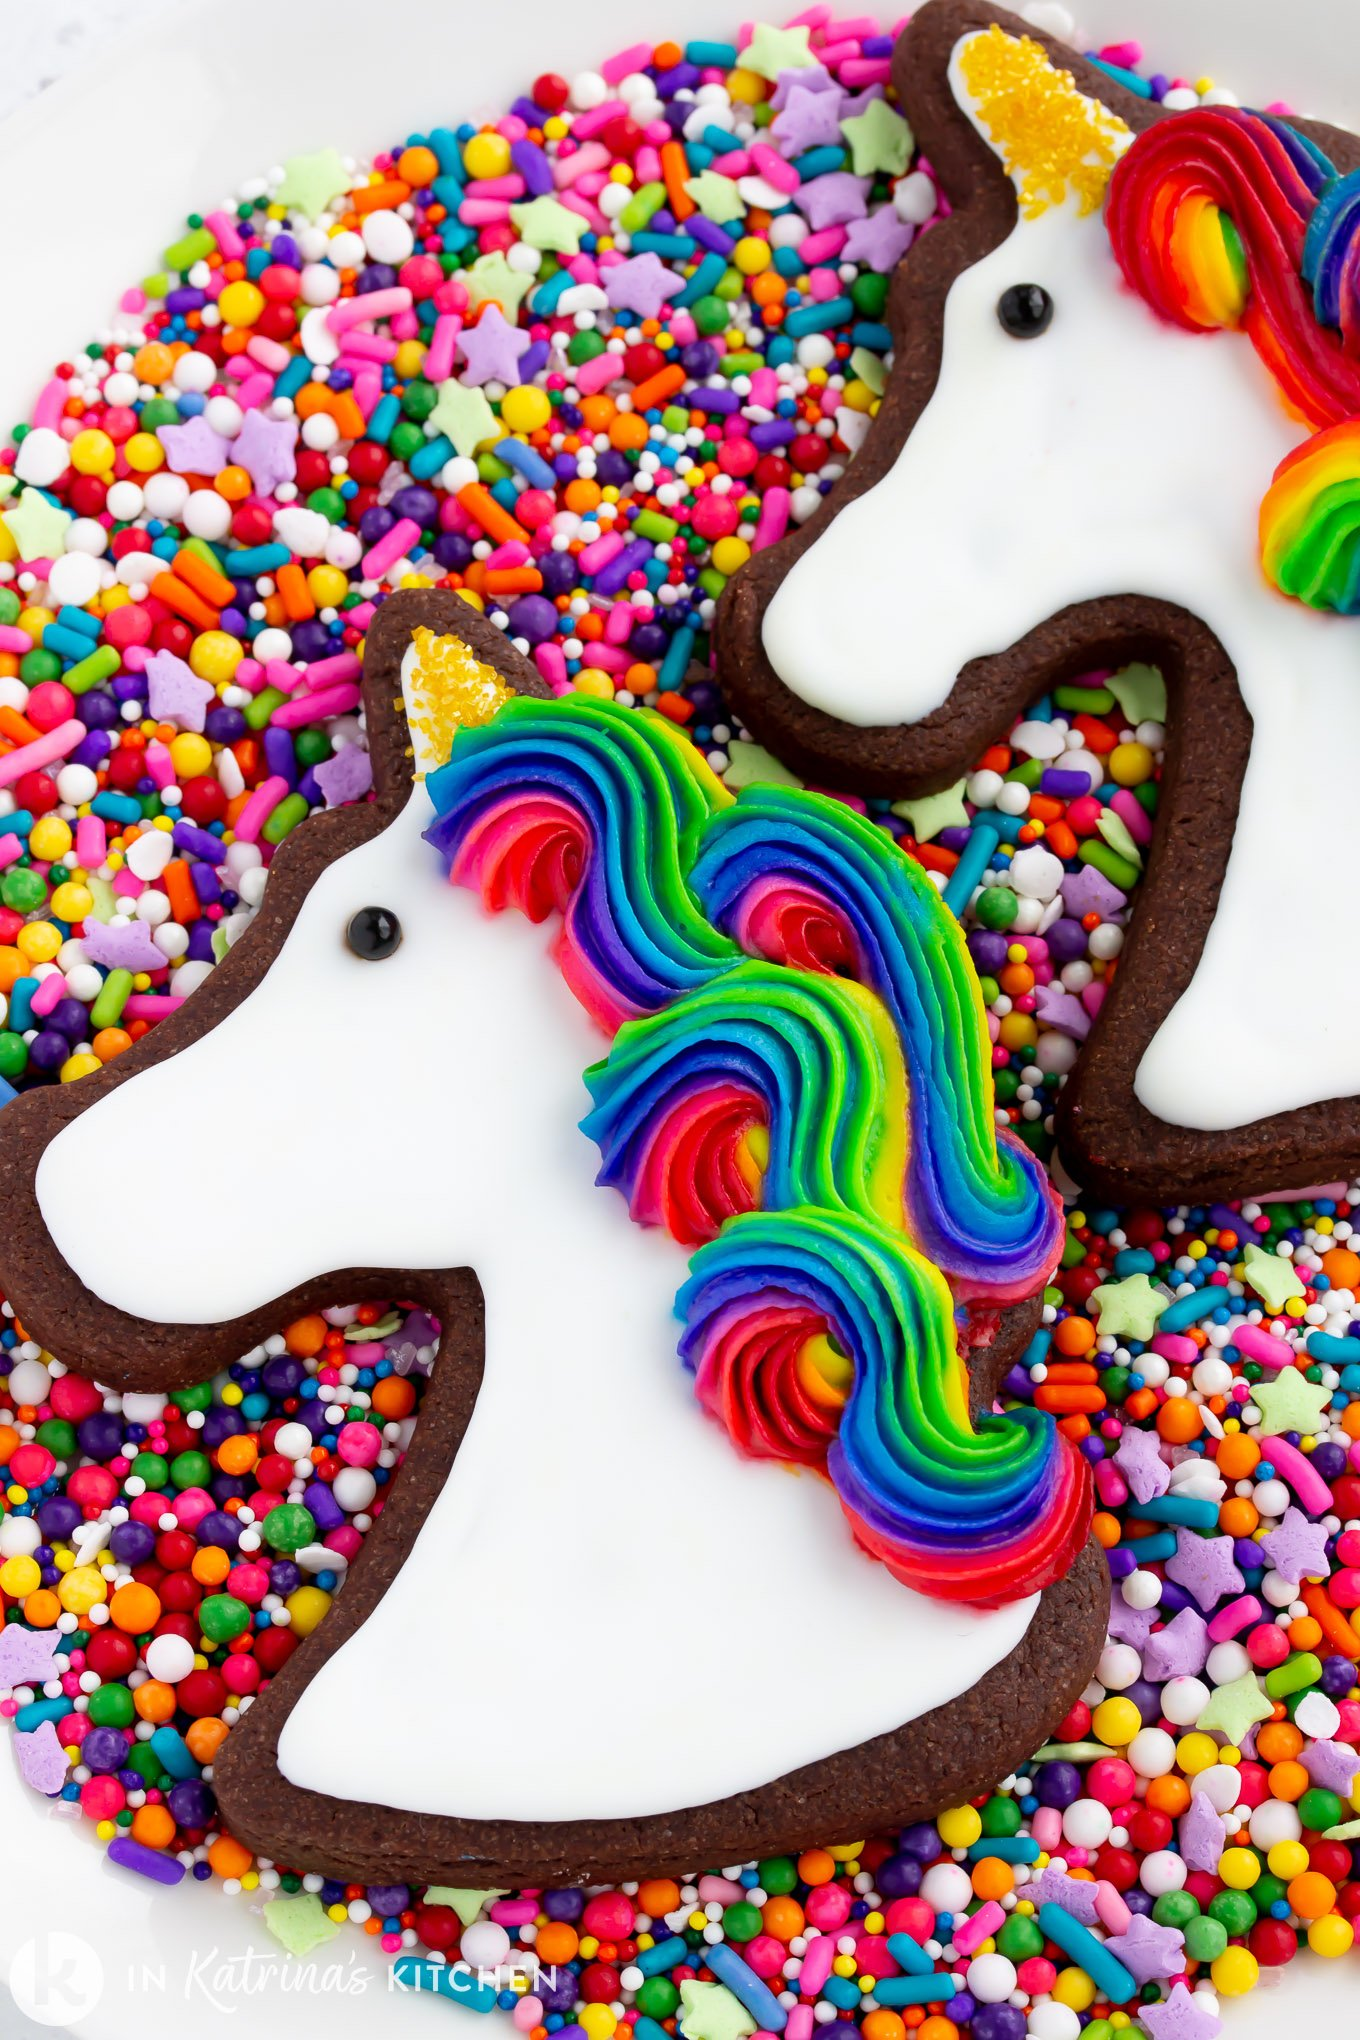 Discover this easy hack to make unicorn rainbow frosting. Use this method for rainbow swirled frosting on cupcakes, cakes, cookies, and more! Our helpful step-by-step tutorial will show you the DIY technique to get that bakery buttercream frosting for your next birthday party desserts.